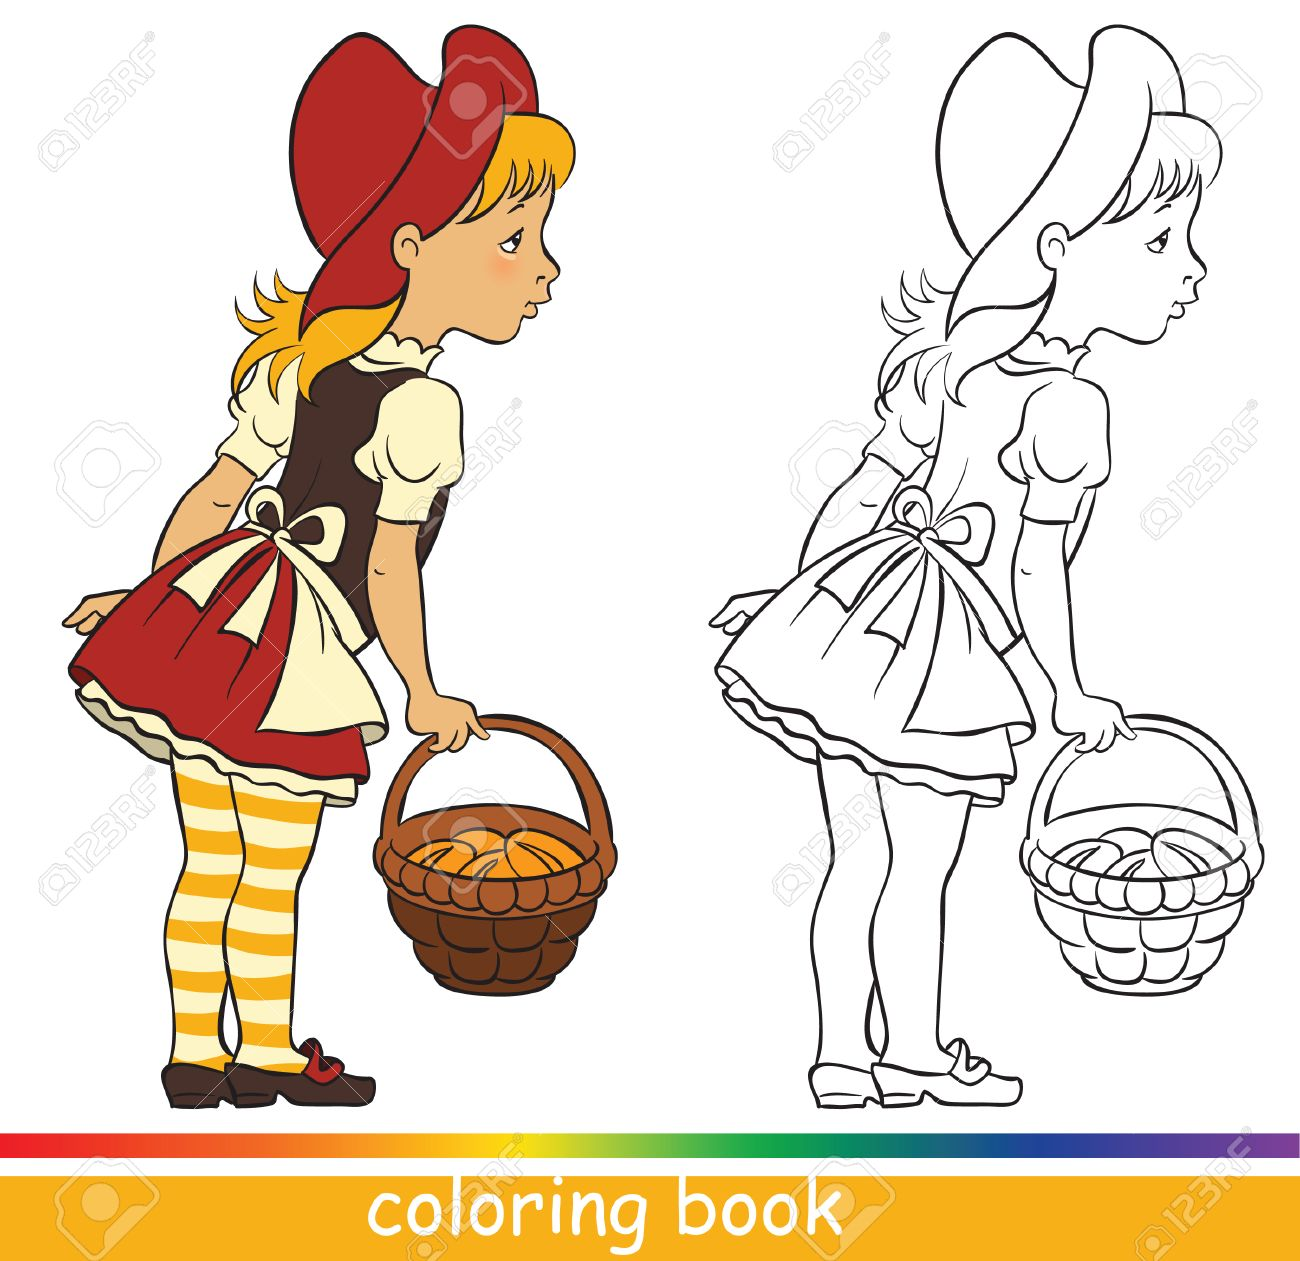 Little Red Riding Hood Fairytale Characters Coloring Book Or